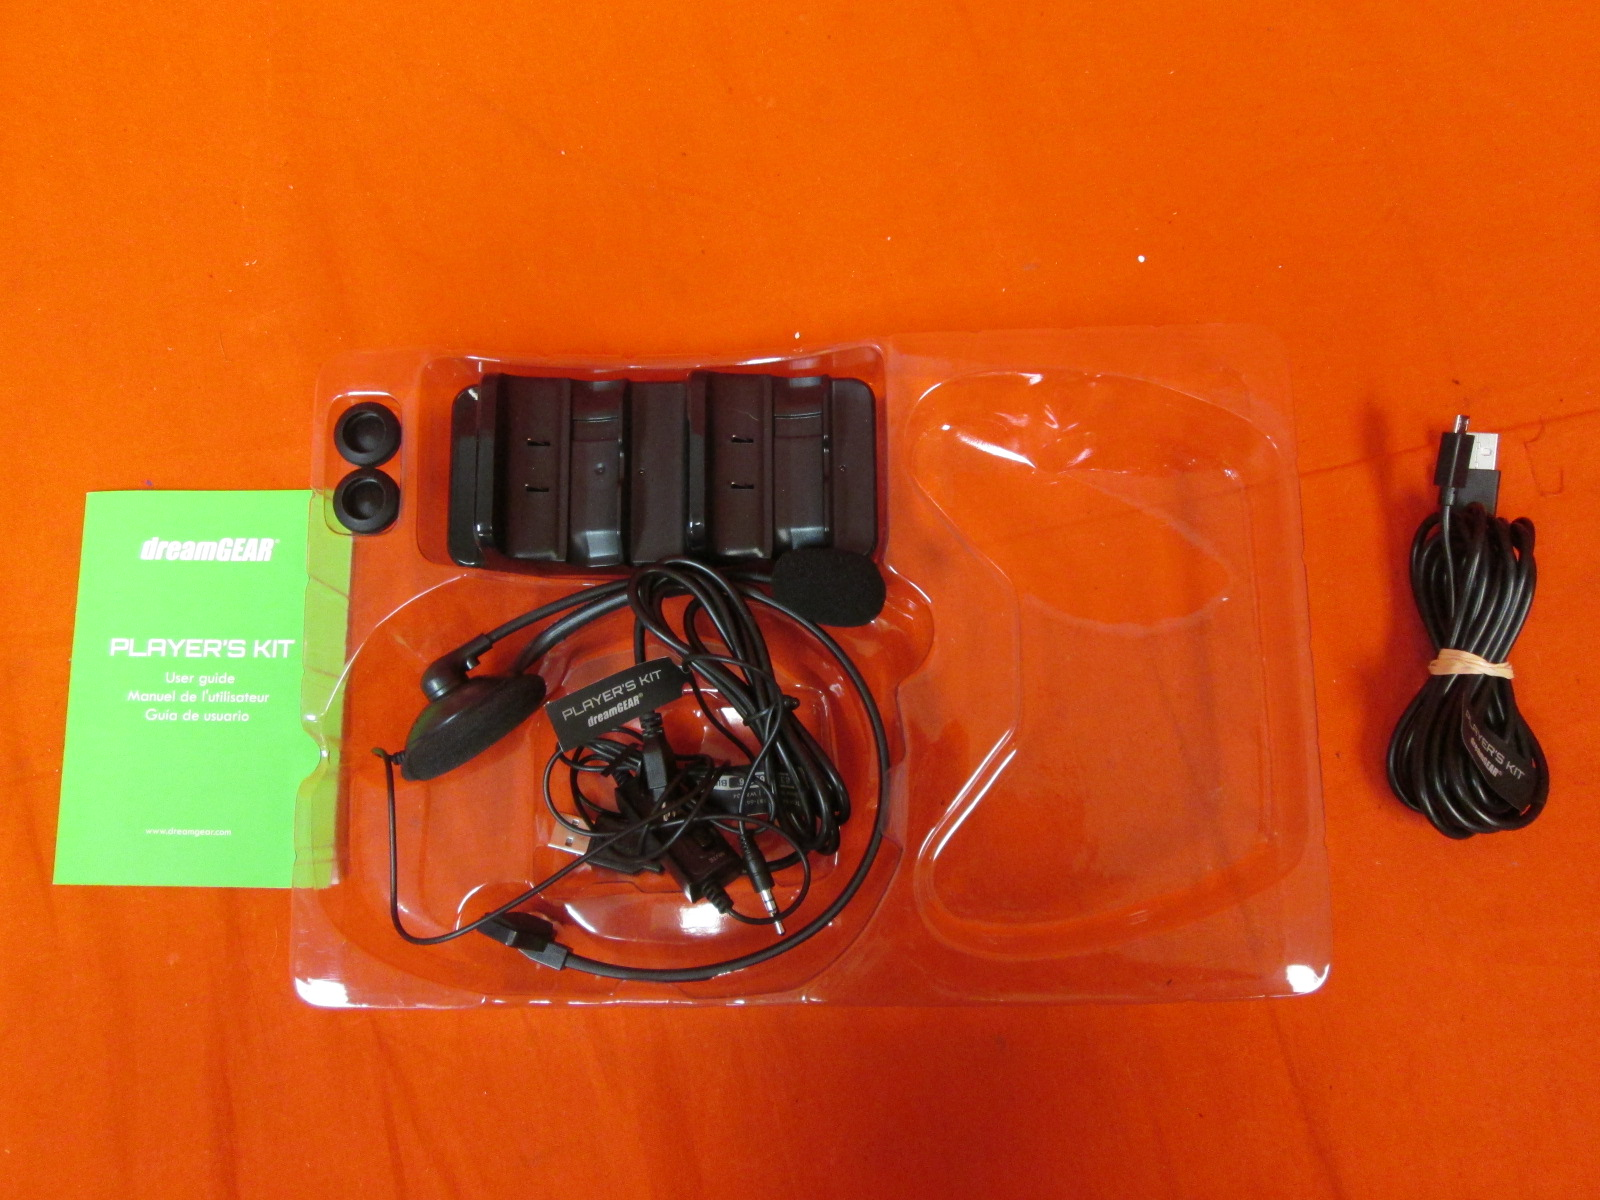 Dreamgear Player's Kit Includes Charge Dock Cable Headset For Xbox One